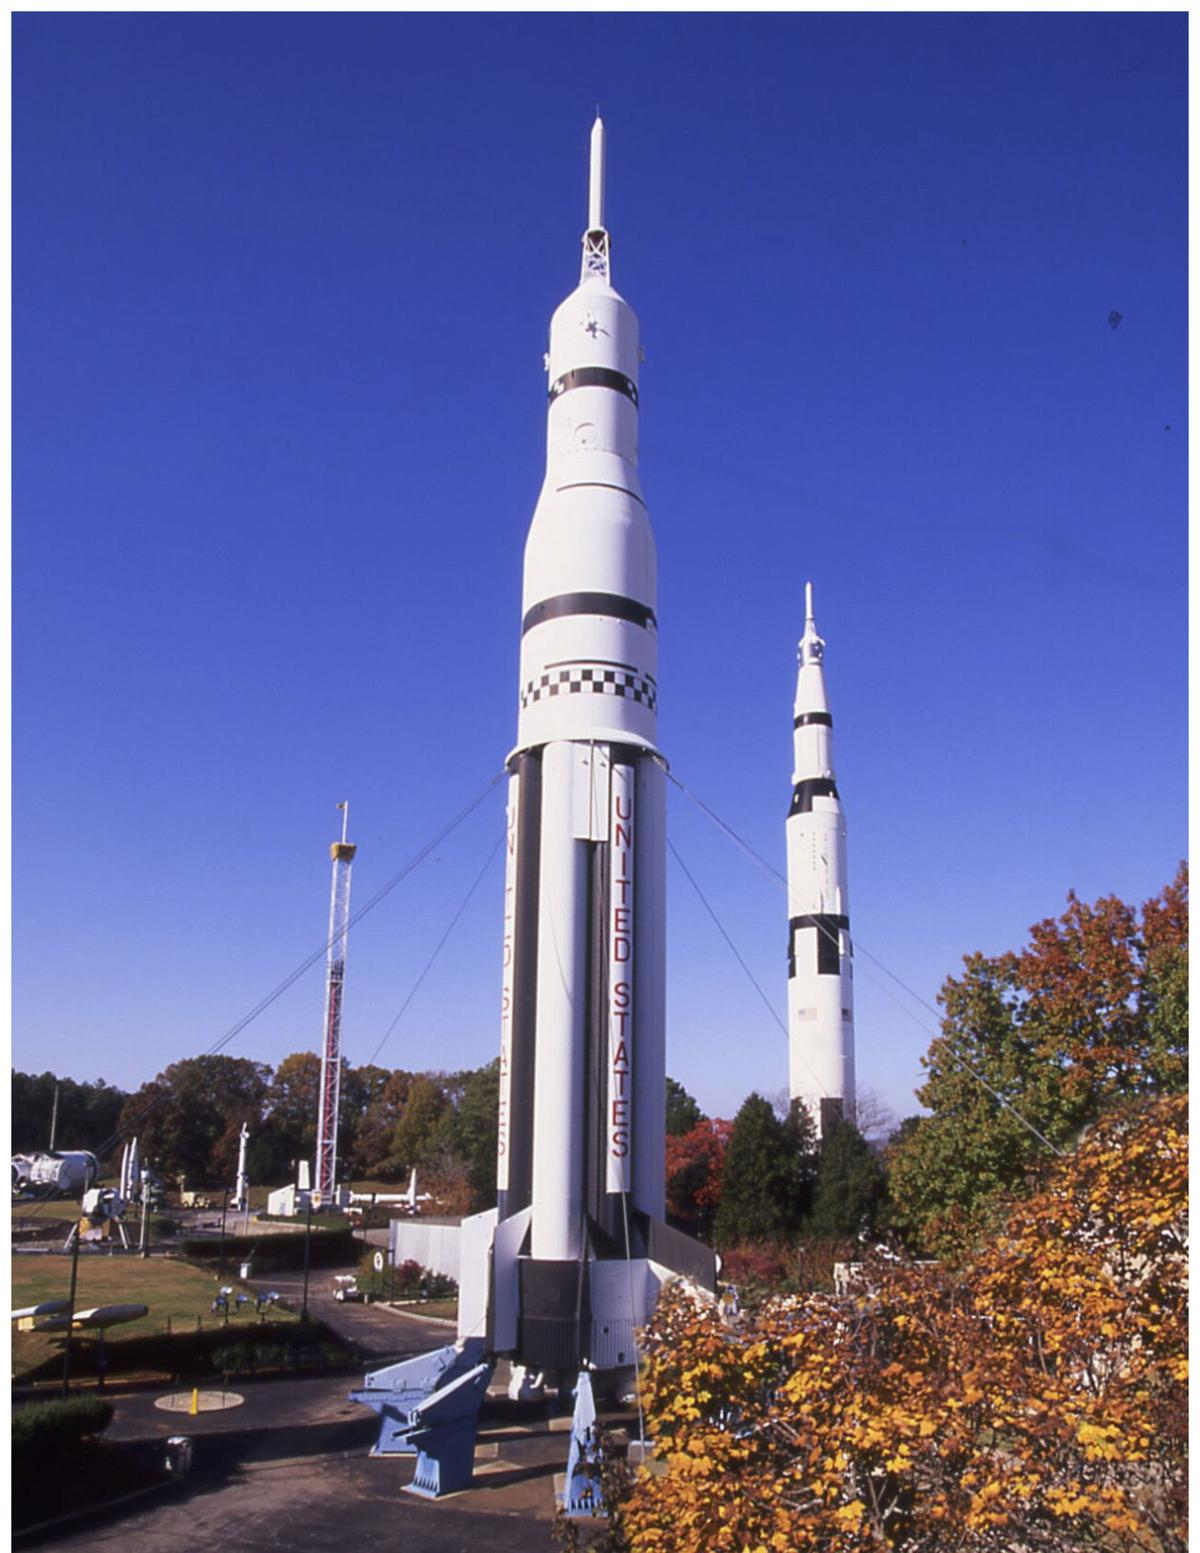 Model rocket launch to mark 50th anniversary of first moon